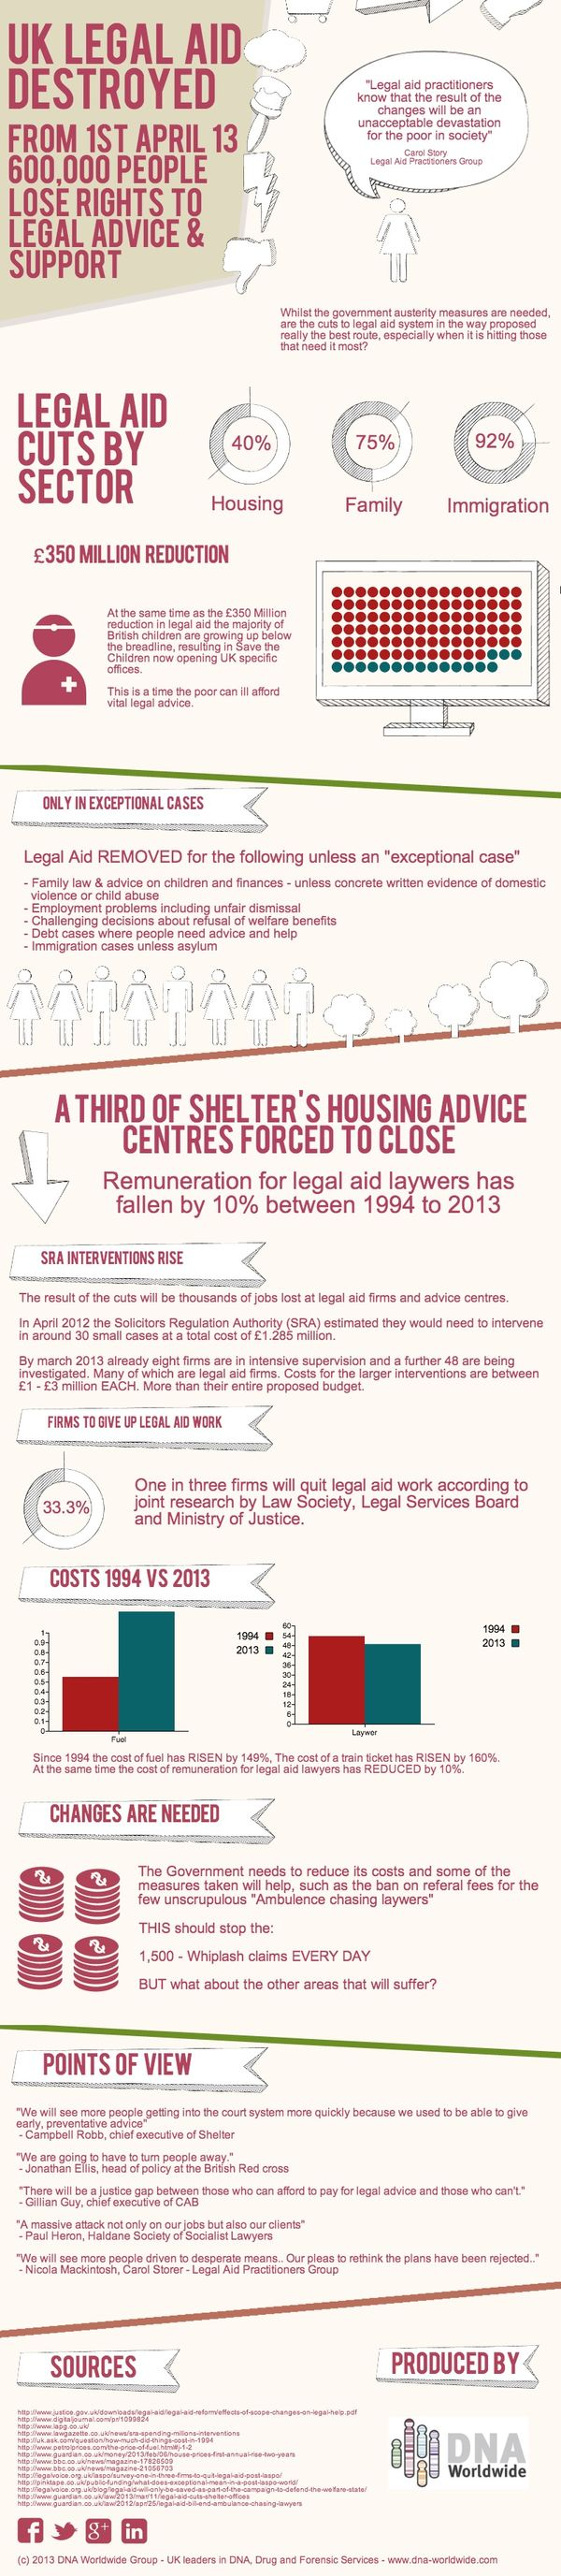 UK Legal aid cuts from april